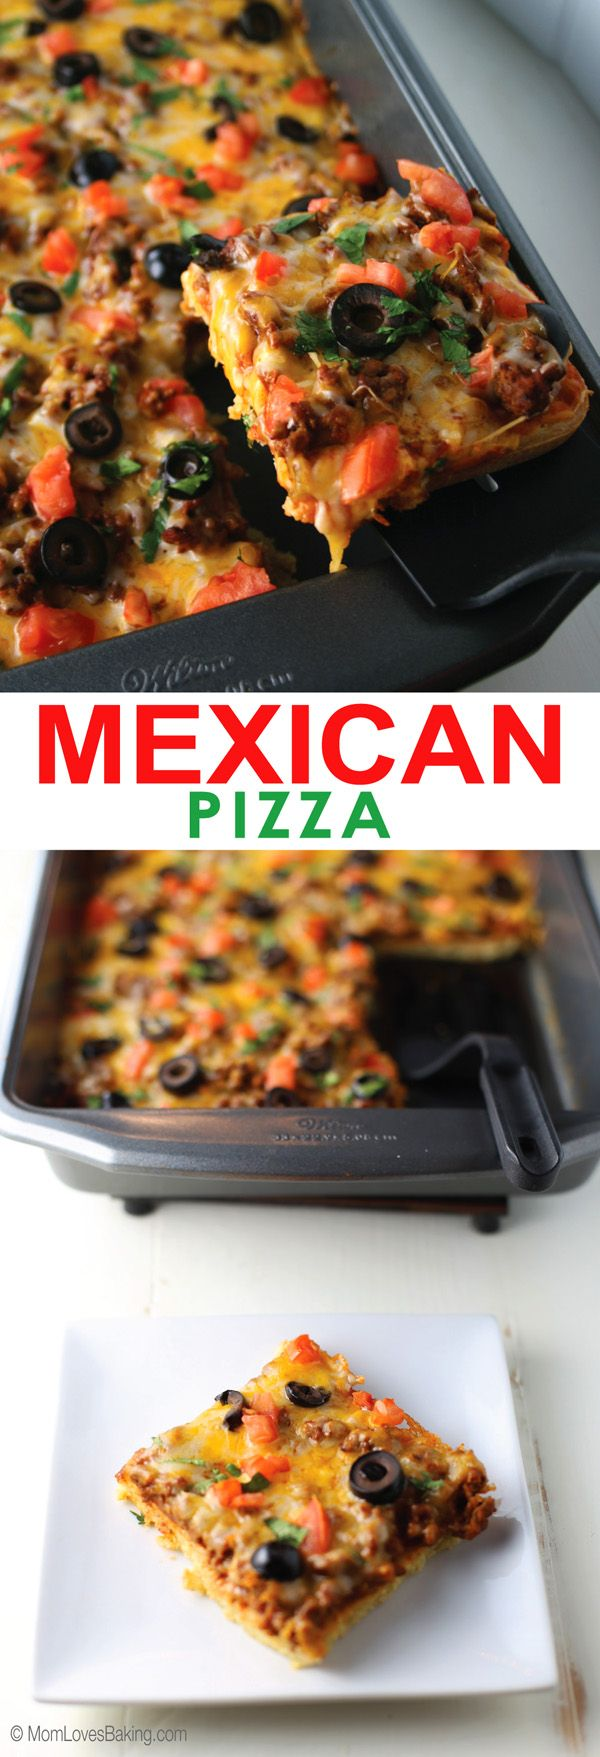 Mexican Pizza! It's like eating a pizza that tastes like a taco. So delish! Plus, it's low carb and gluten free! #KickUpTheFlavor [ad]